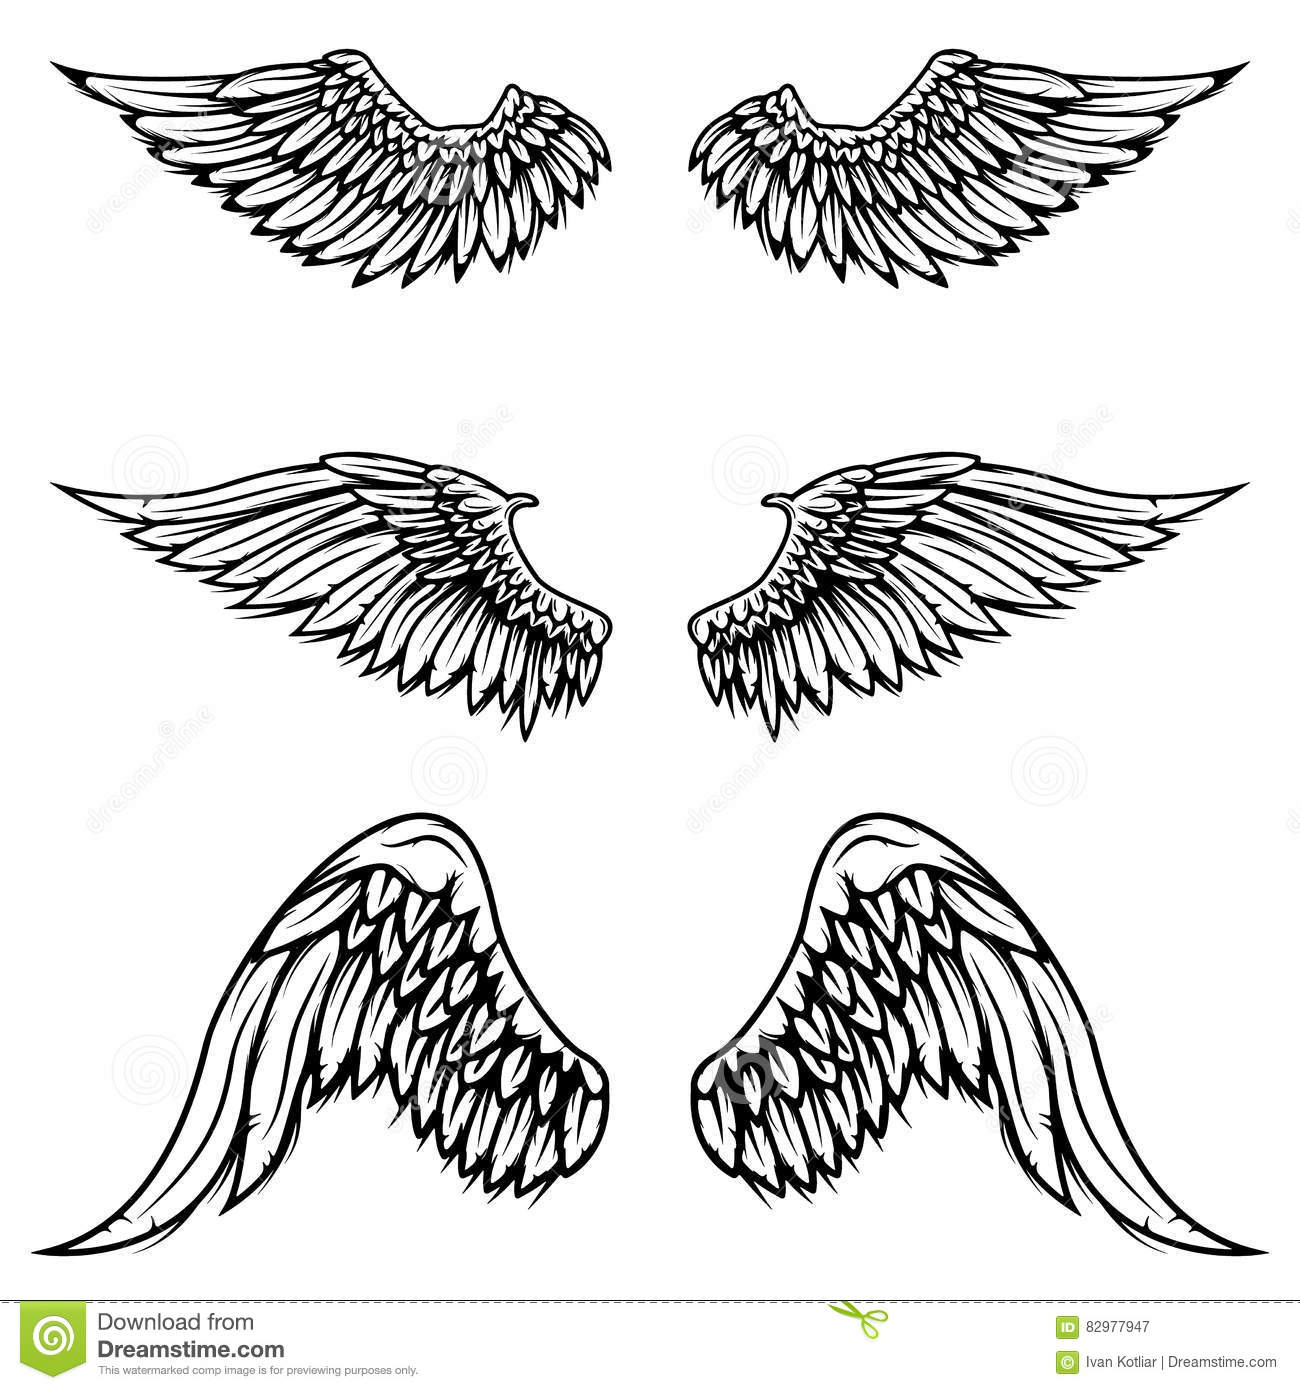 Have winged logos vintage business